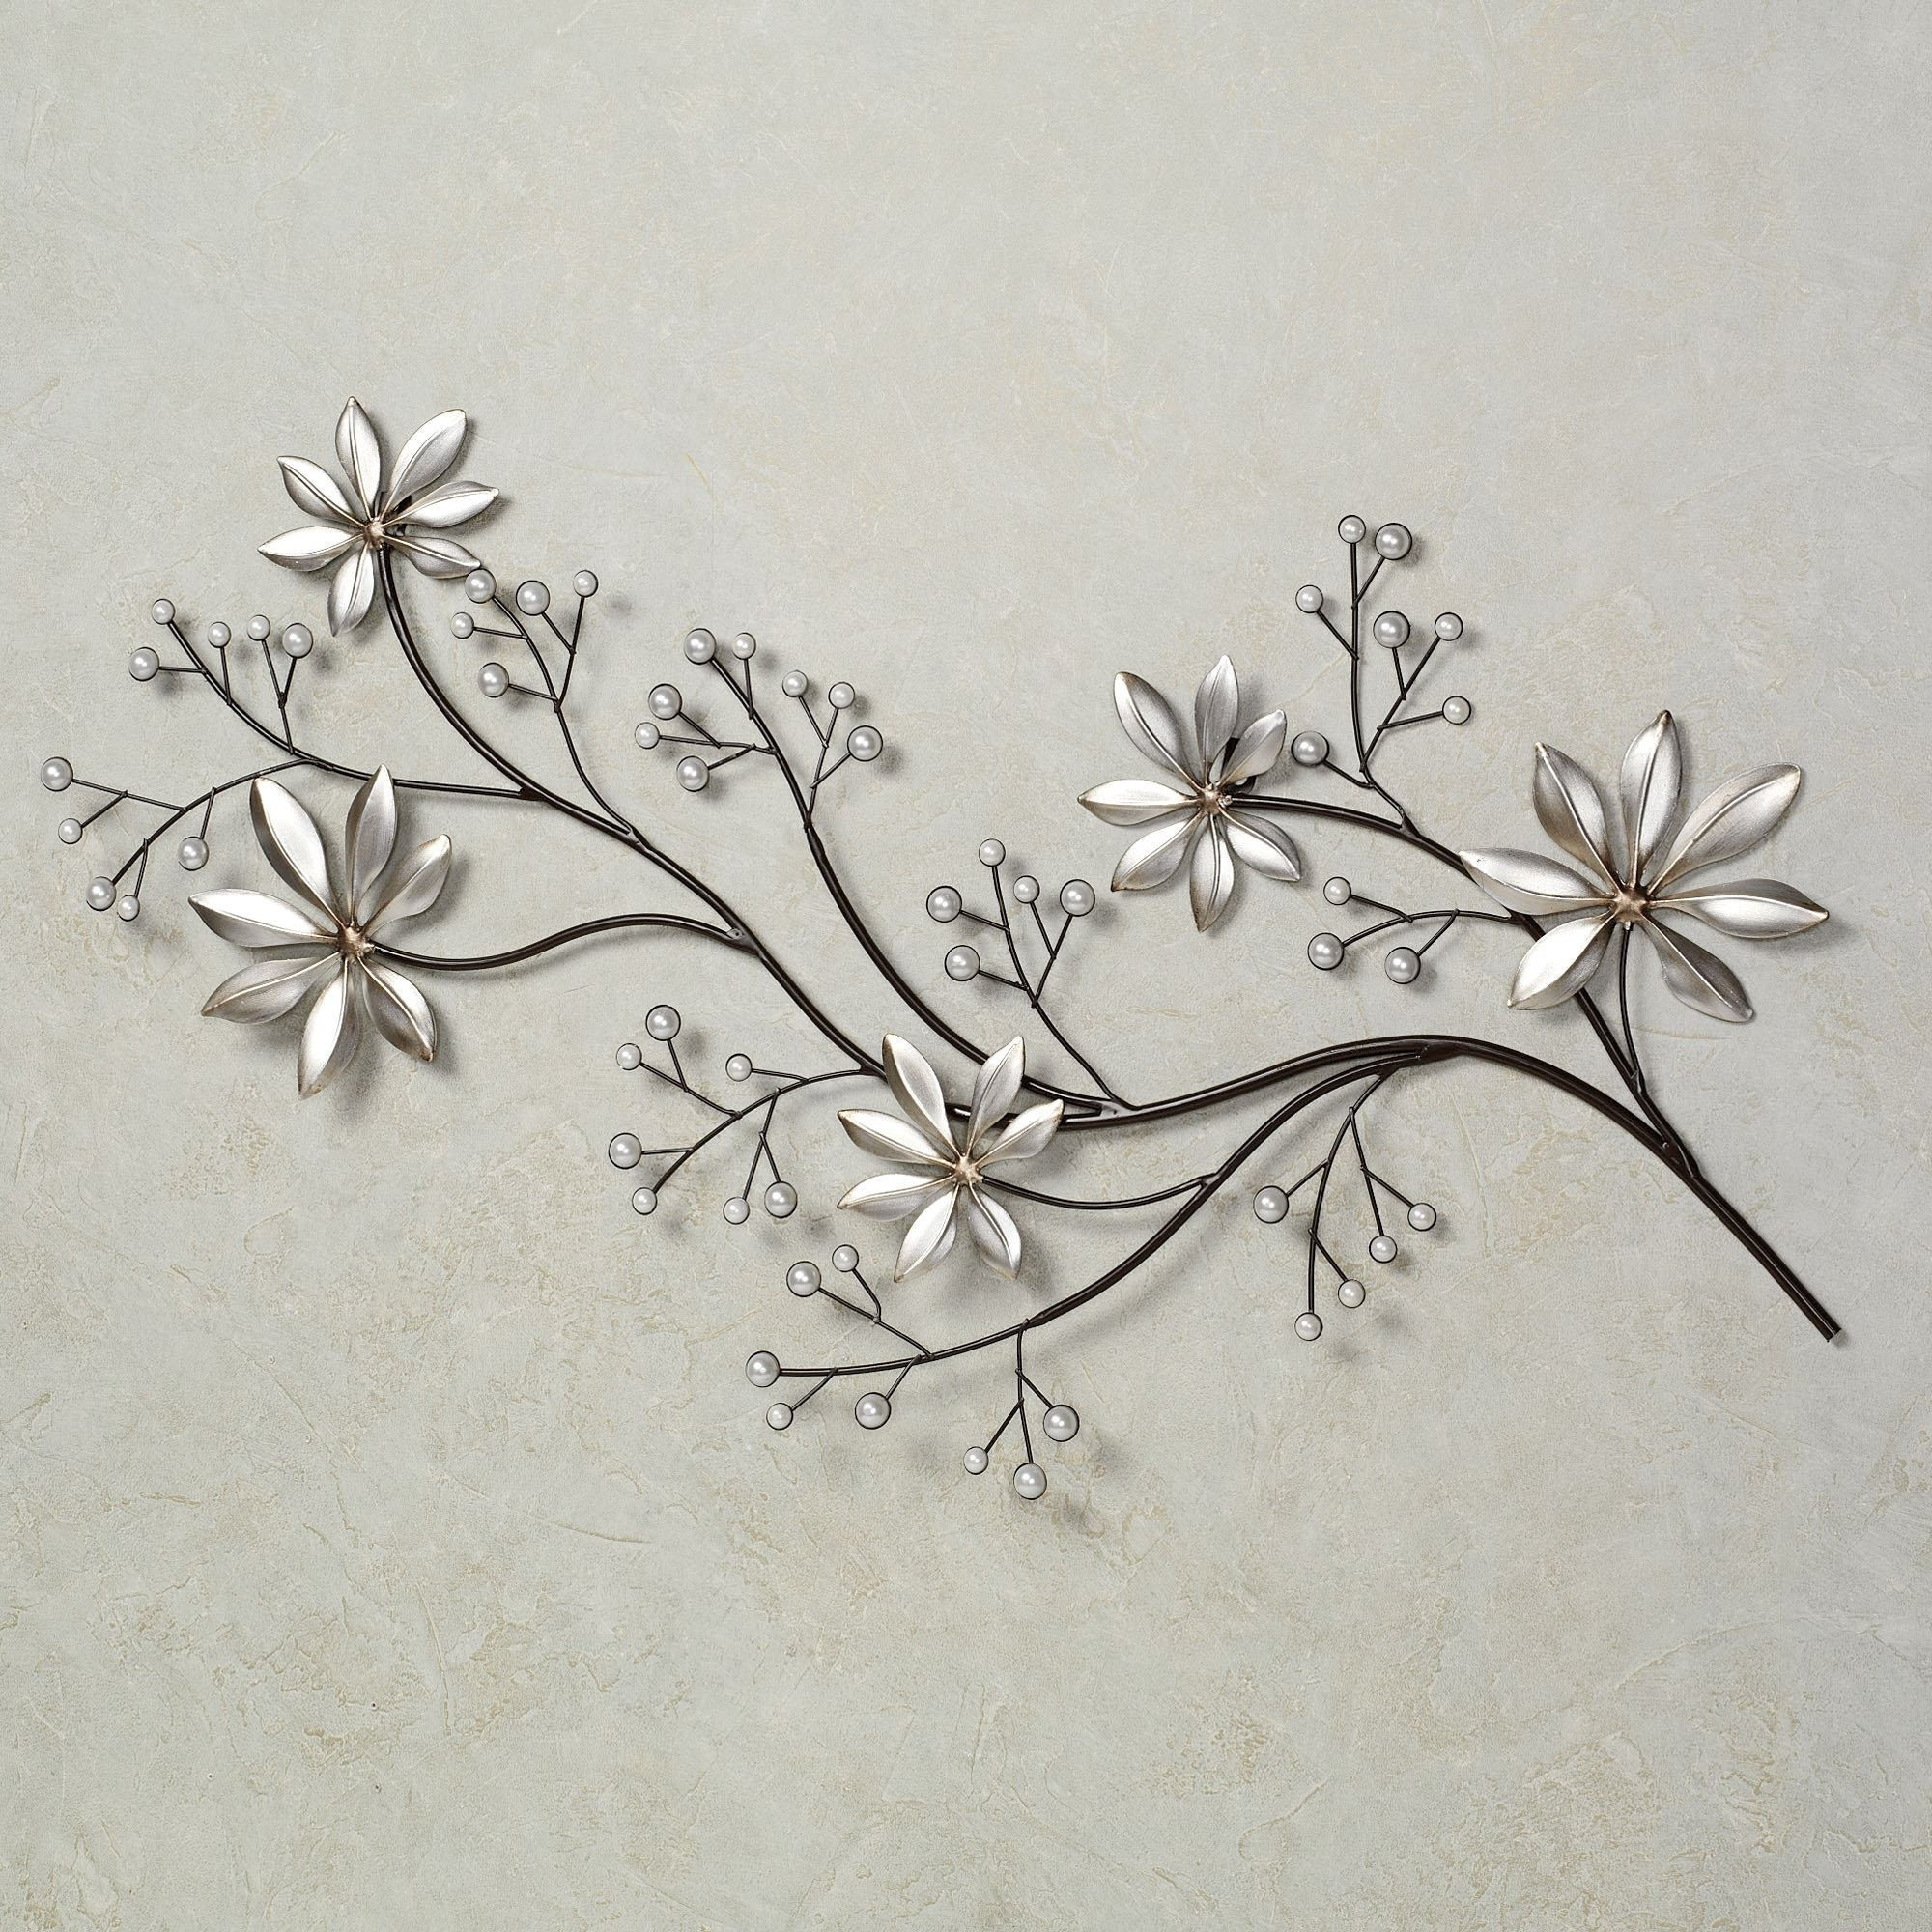 31 Beautiful Floral Wall Art Design Of Metal Flowers Wall Decor with regard to Fashionable Metal Flowers Wall Art